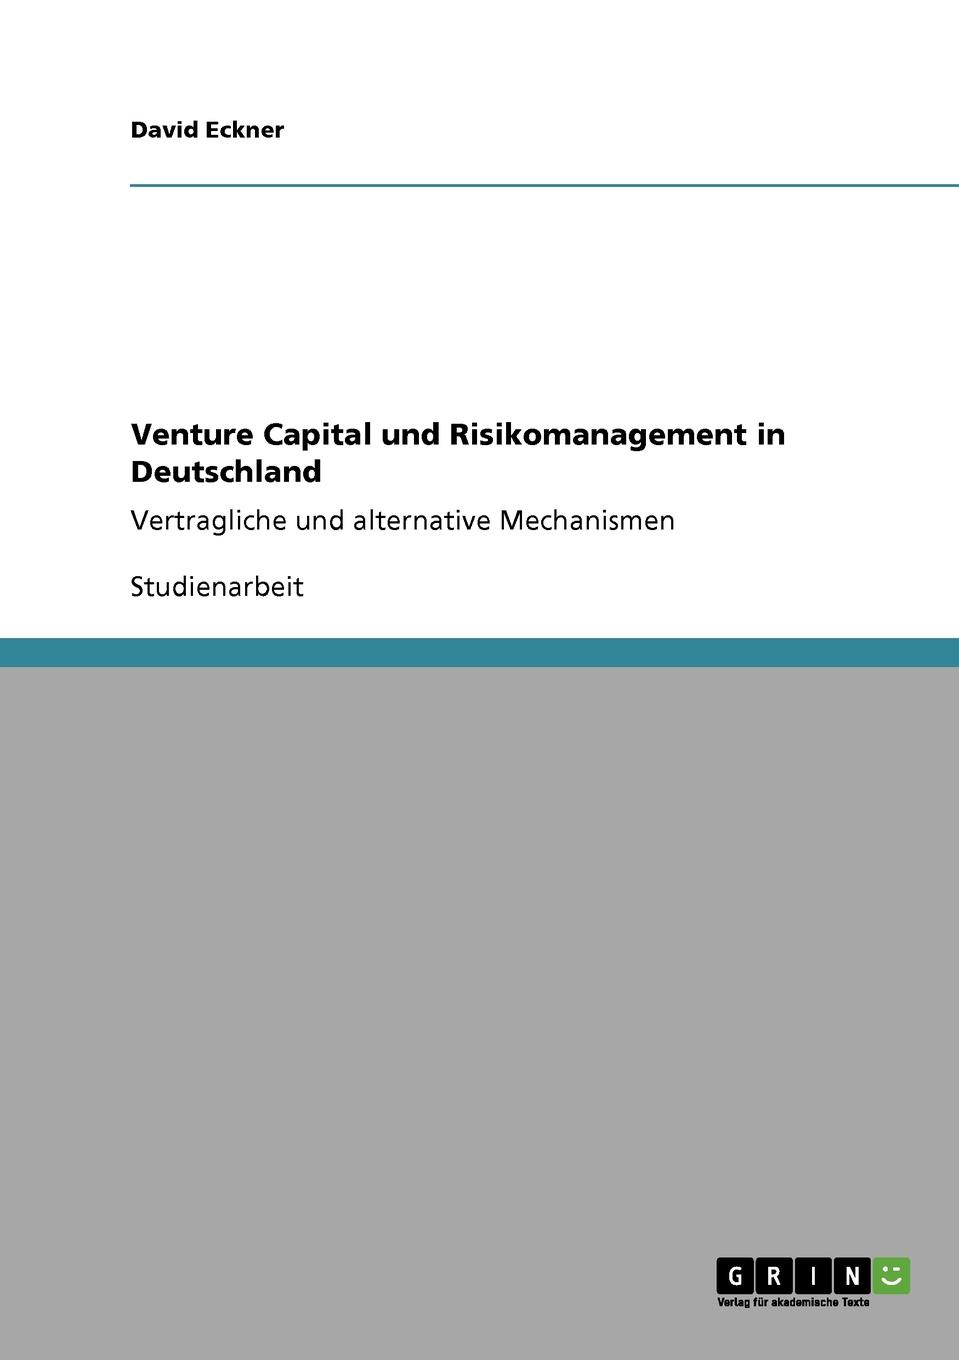 David Eckner Venture Capital und Risikomanagement in Deutschland nicole gravagna venture capital for dummies